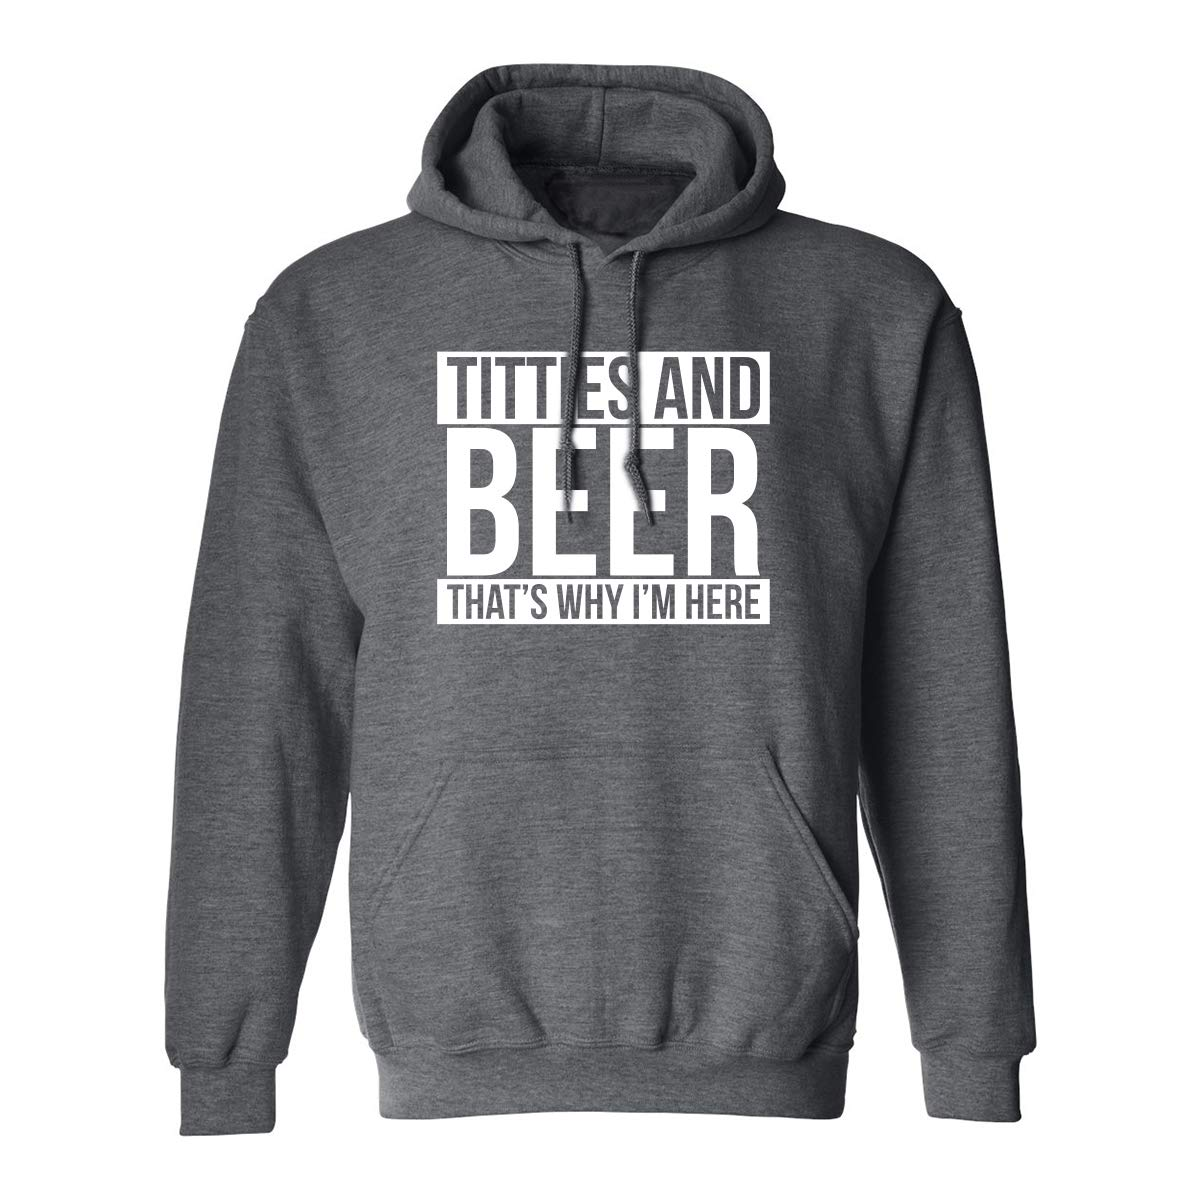 zerogravitee Titties and Beer Adult Hooded Sweatshirt